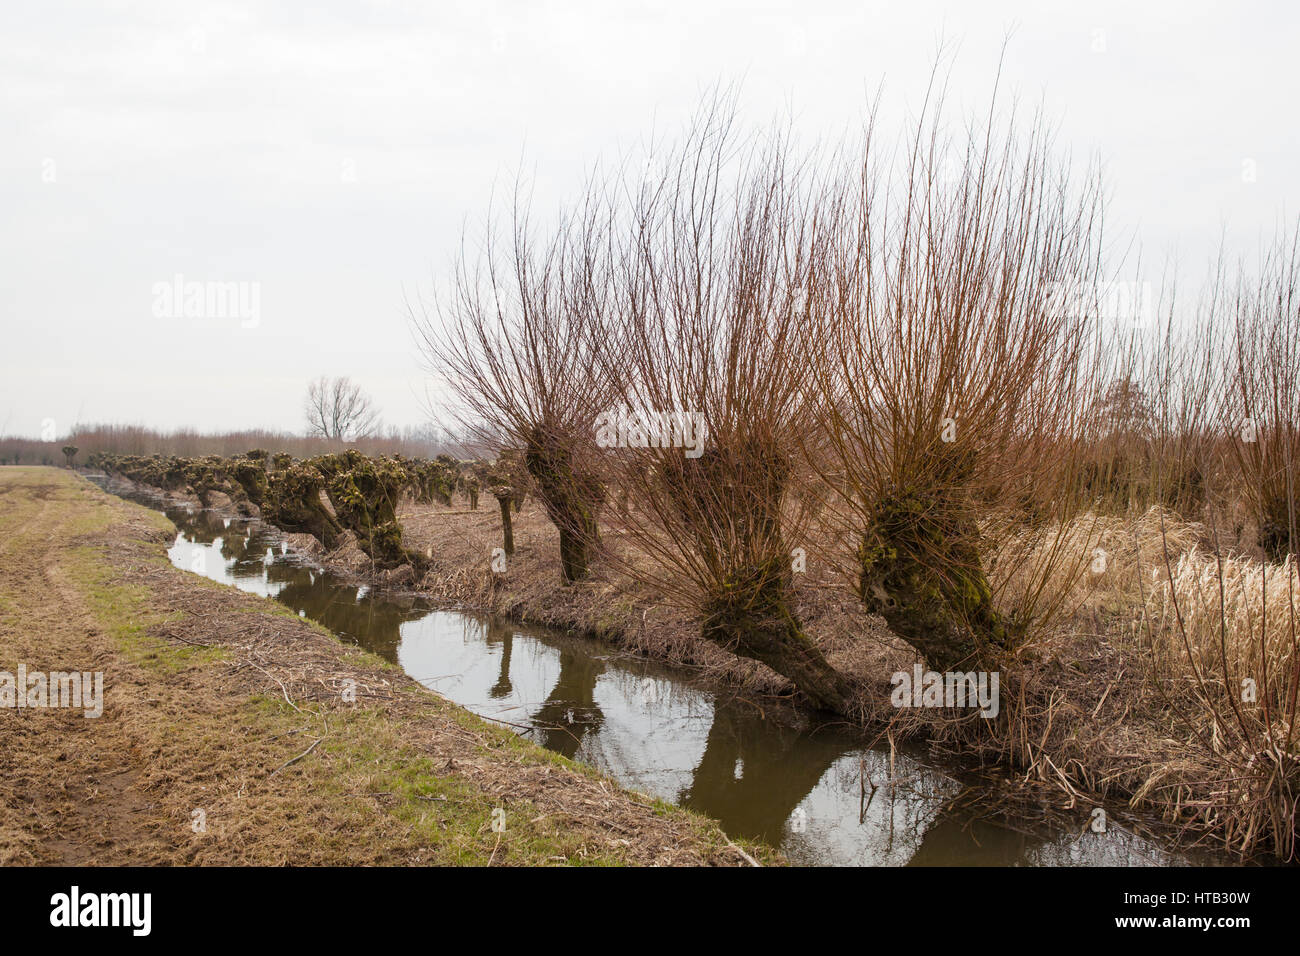 Netherlands Landscape with pruned pollard willows in early spring - Stock Image